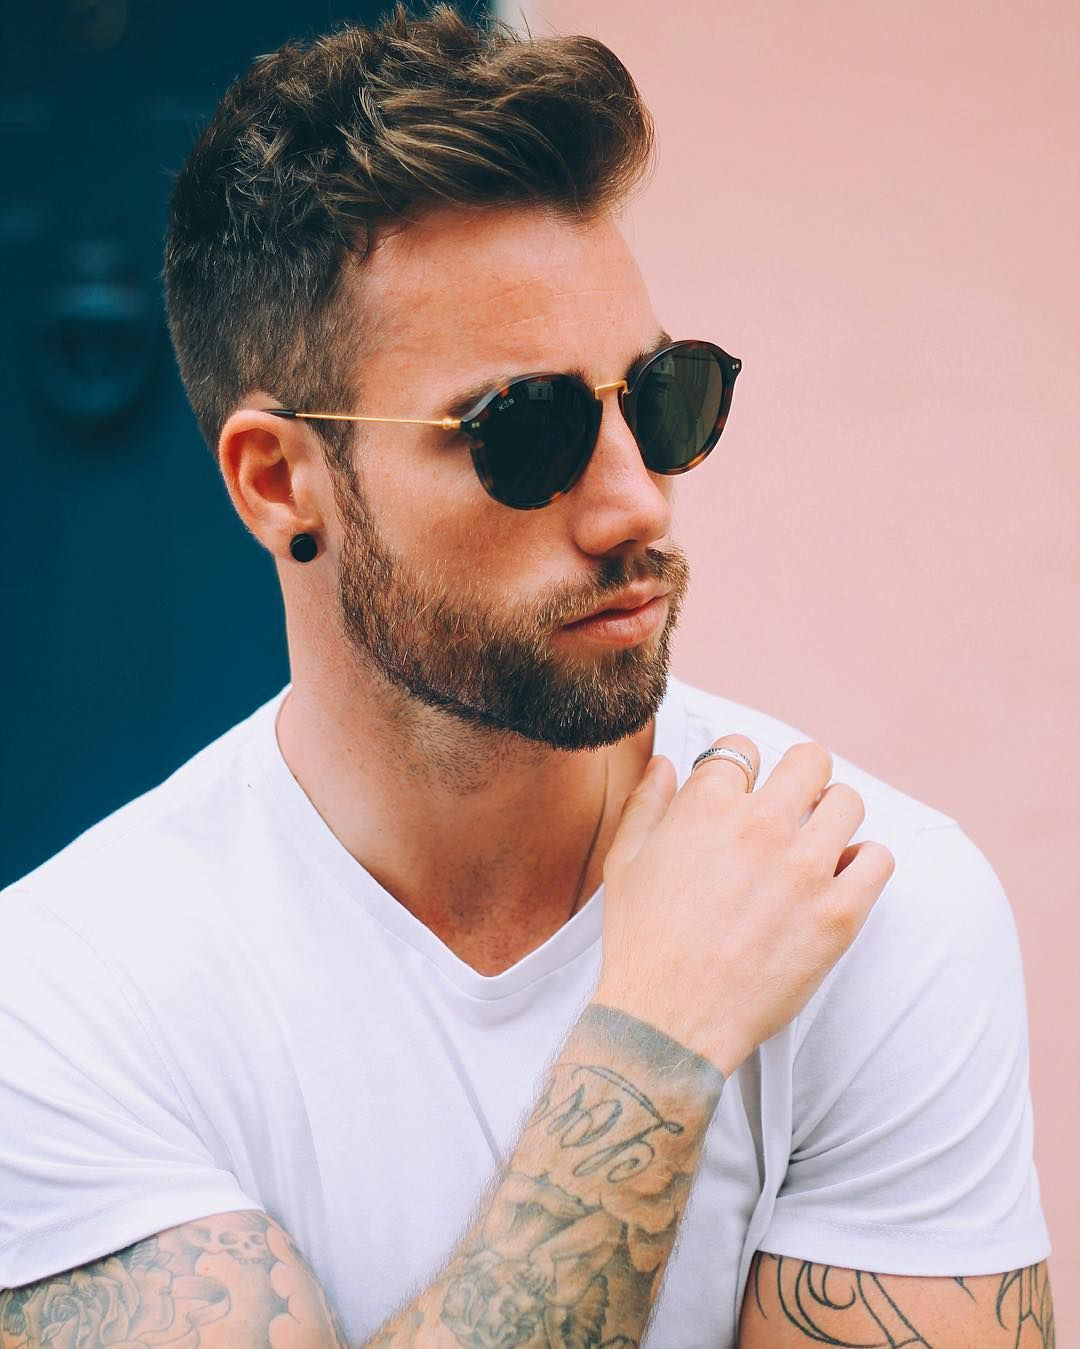 Trendy haircuts for men chez rust chezrust u instagram photos and videos  insta in